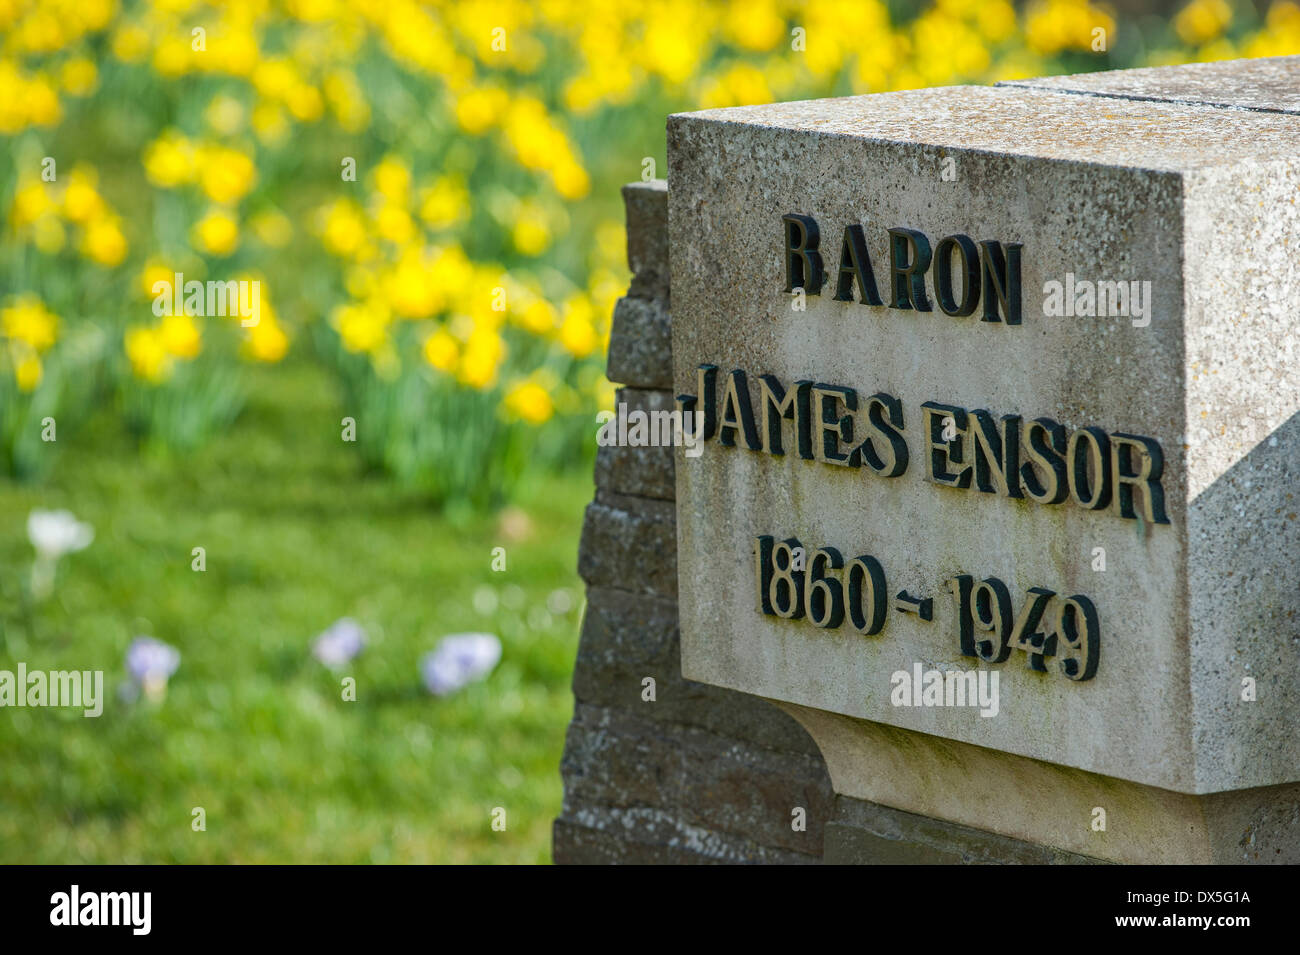 Tombstone of painter James Ensor at graveyard of church Onze-Lieve-Vrouw-ter-Duinen / Our Lady of the Dunes, Mariakerke, Belgium - Stock Image